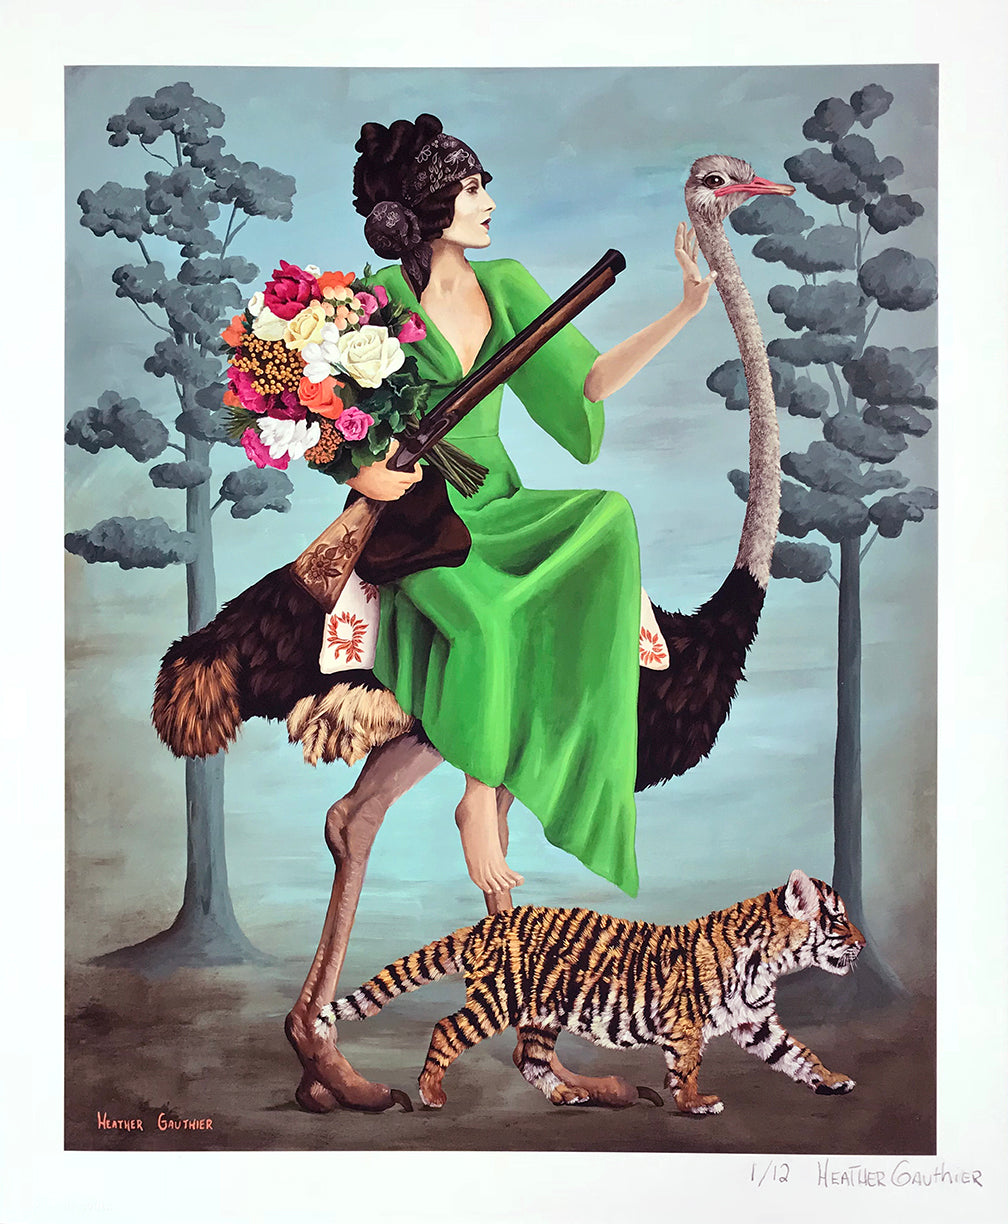 "Heather Gauthier ""Huntress-Gatheress"" - Archival Print, Limited Edition of 12 - 14 x 17"""